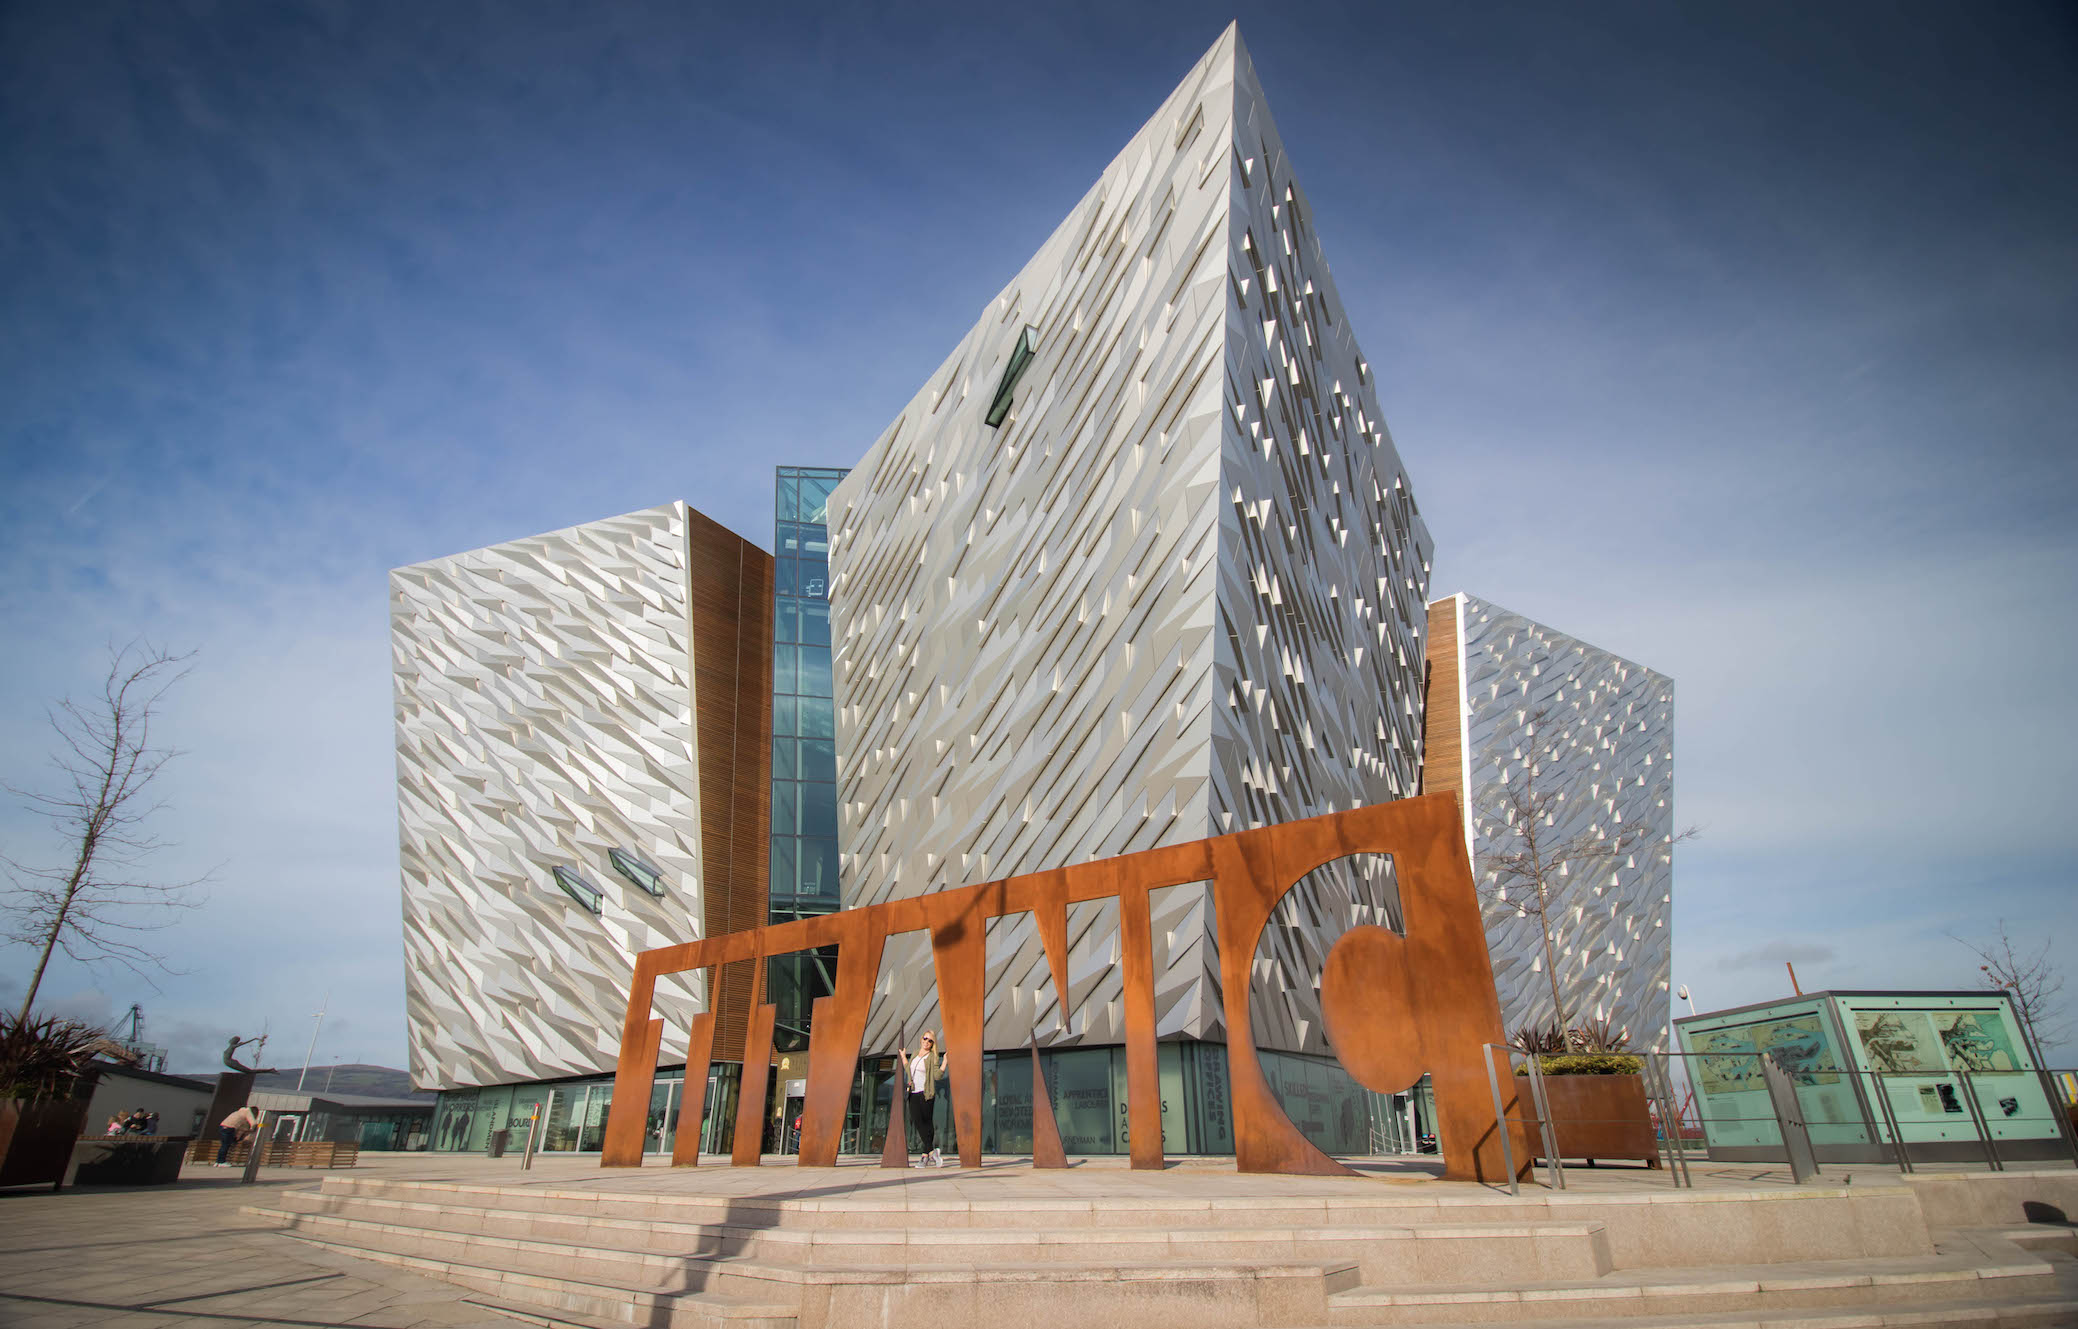 THINGS TO DO IN NORTHERN IRELAND: THE TITANIC MUSEUM, BELFAST